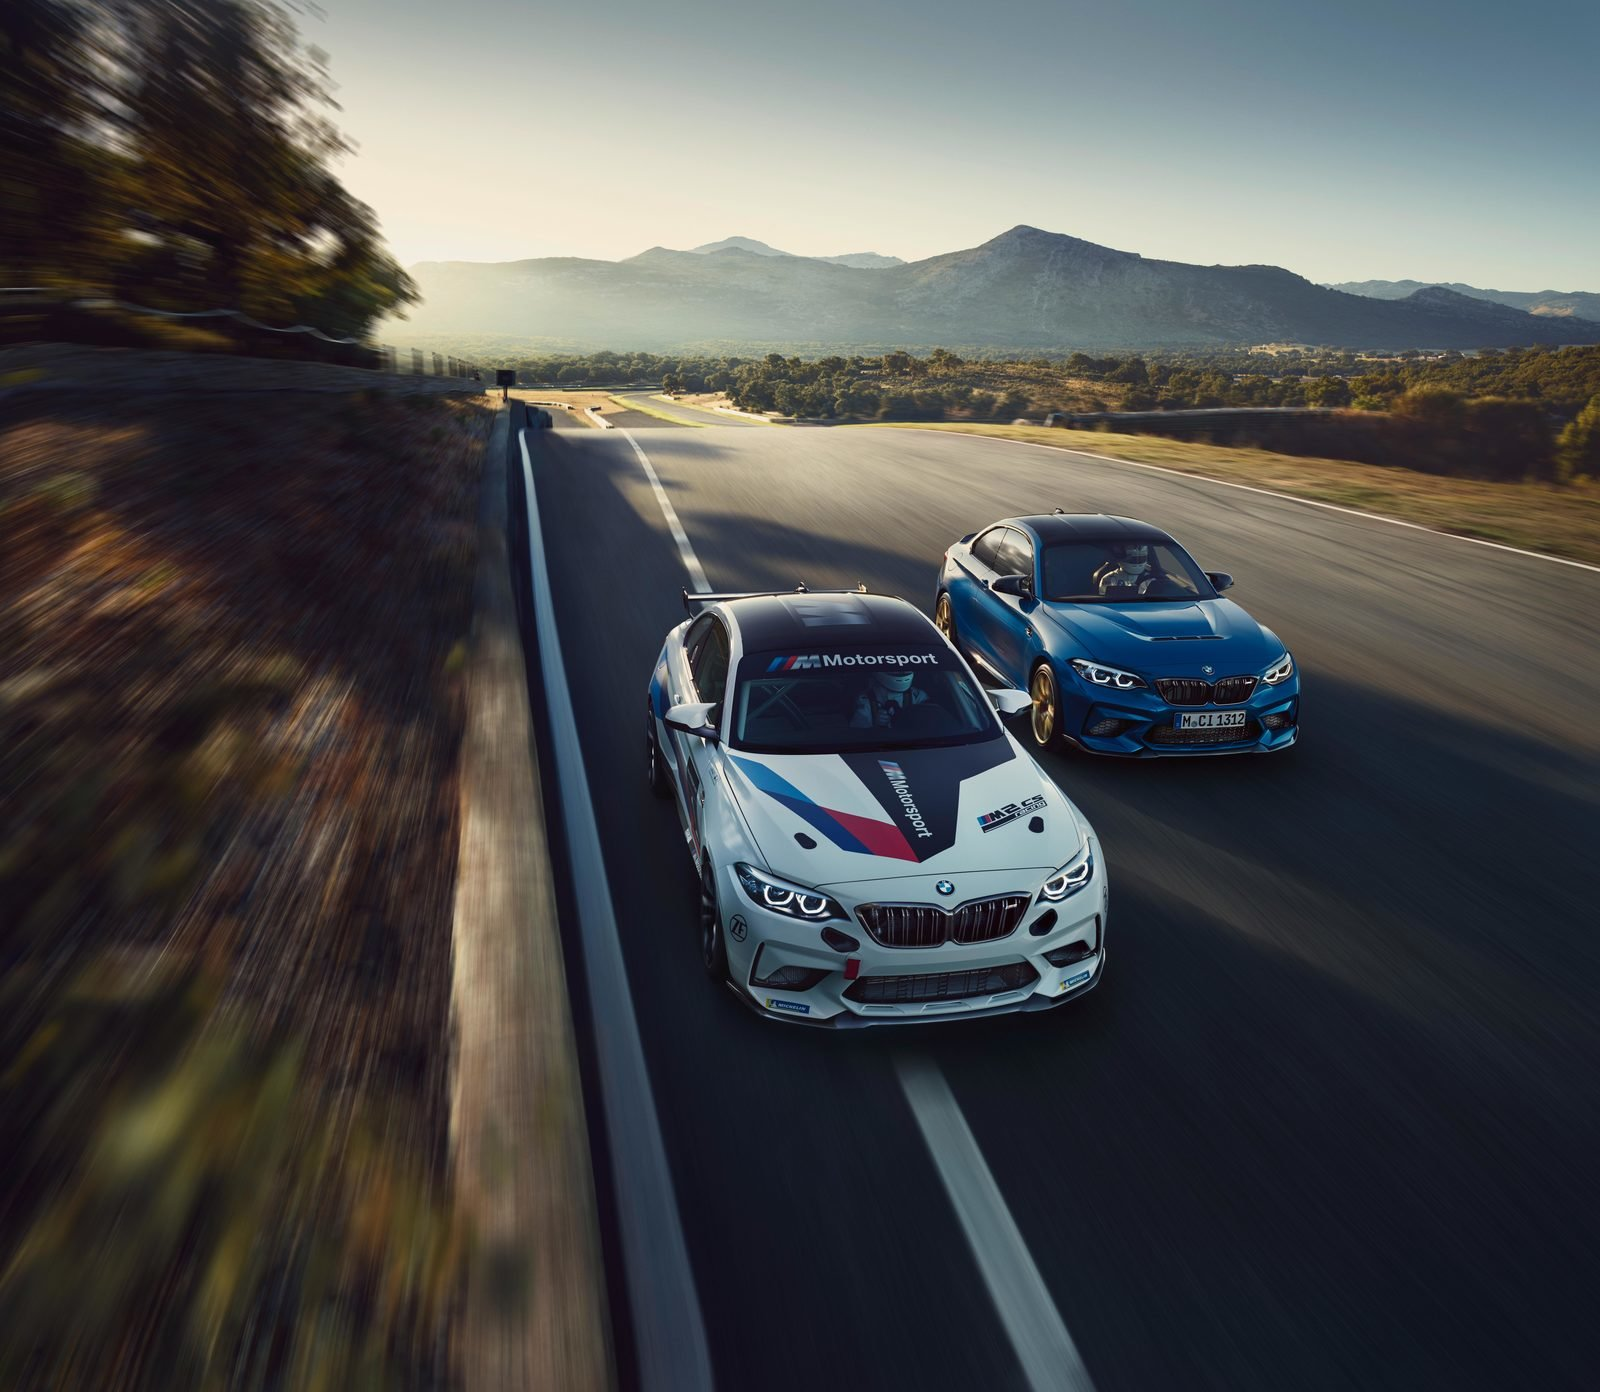 Bmw: Wallpaper Of The Day: 2020 BMW M2 CS Racing